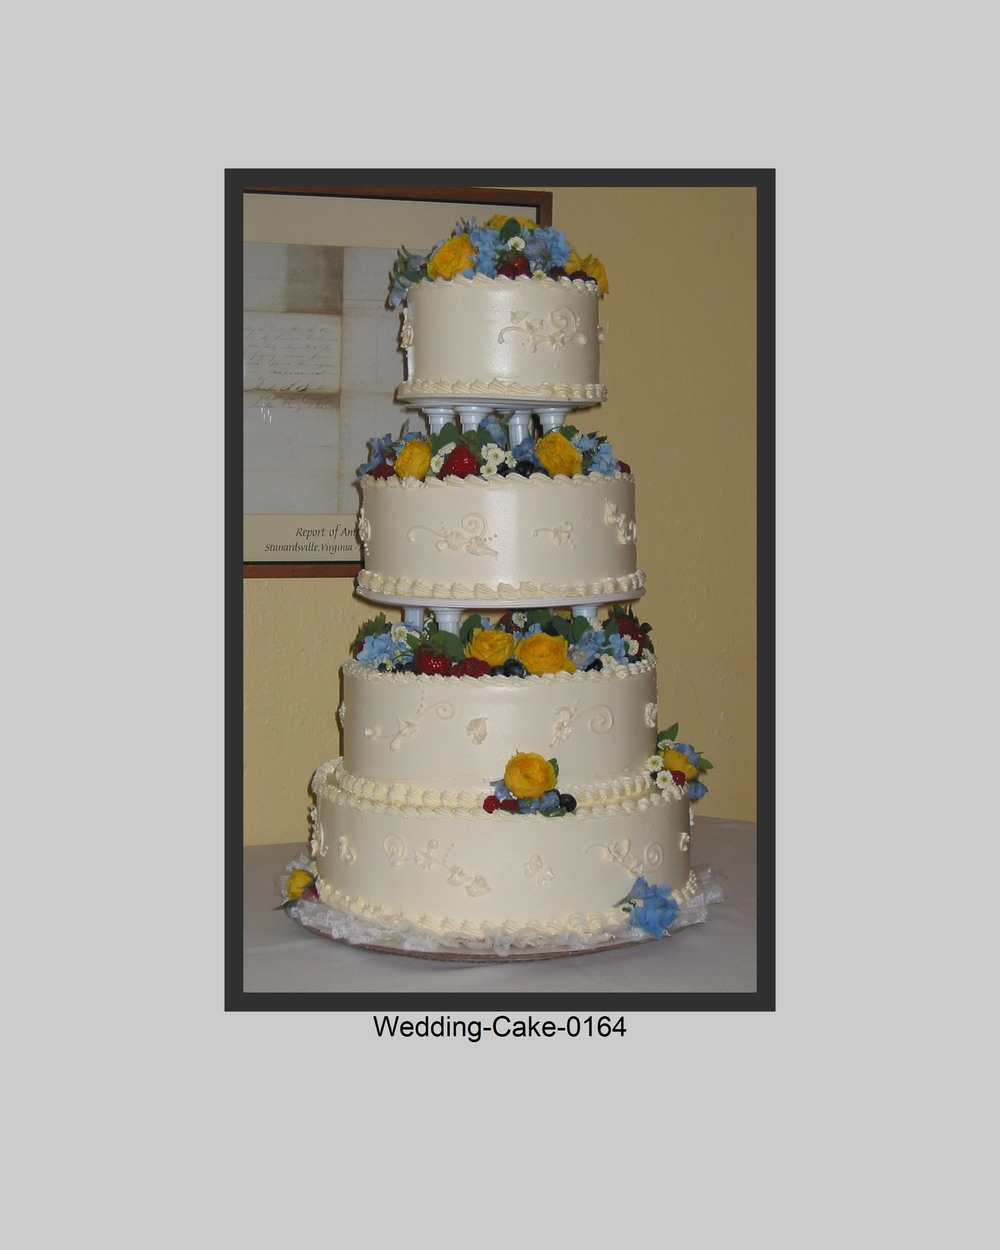 Wedding-Cake-Prints-0164.jpg